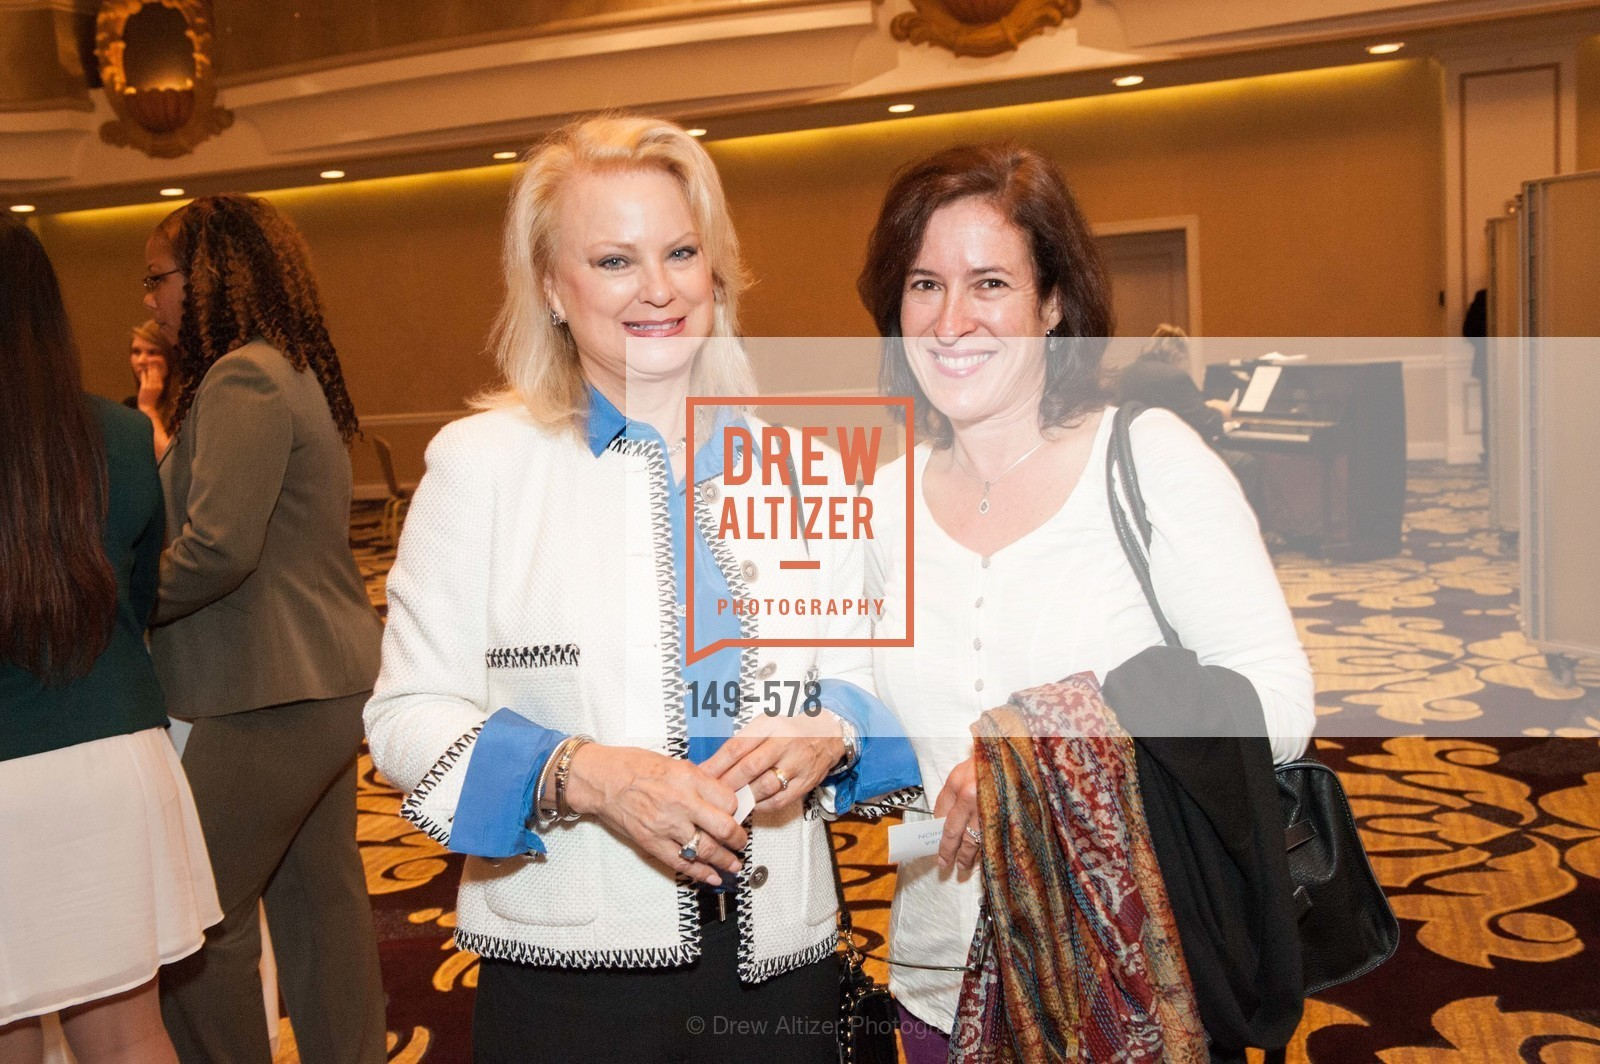 Sandra Friese, Laura Cashion, HOMELESS PRENATAL Annual Luncheon 2014, US, October 1st, 2014,Drew Altizer, Drew Altizer Photography, full-service agency, private events, San Francisco photographer, photographer california